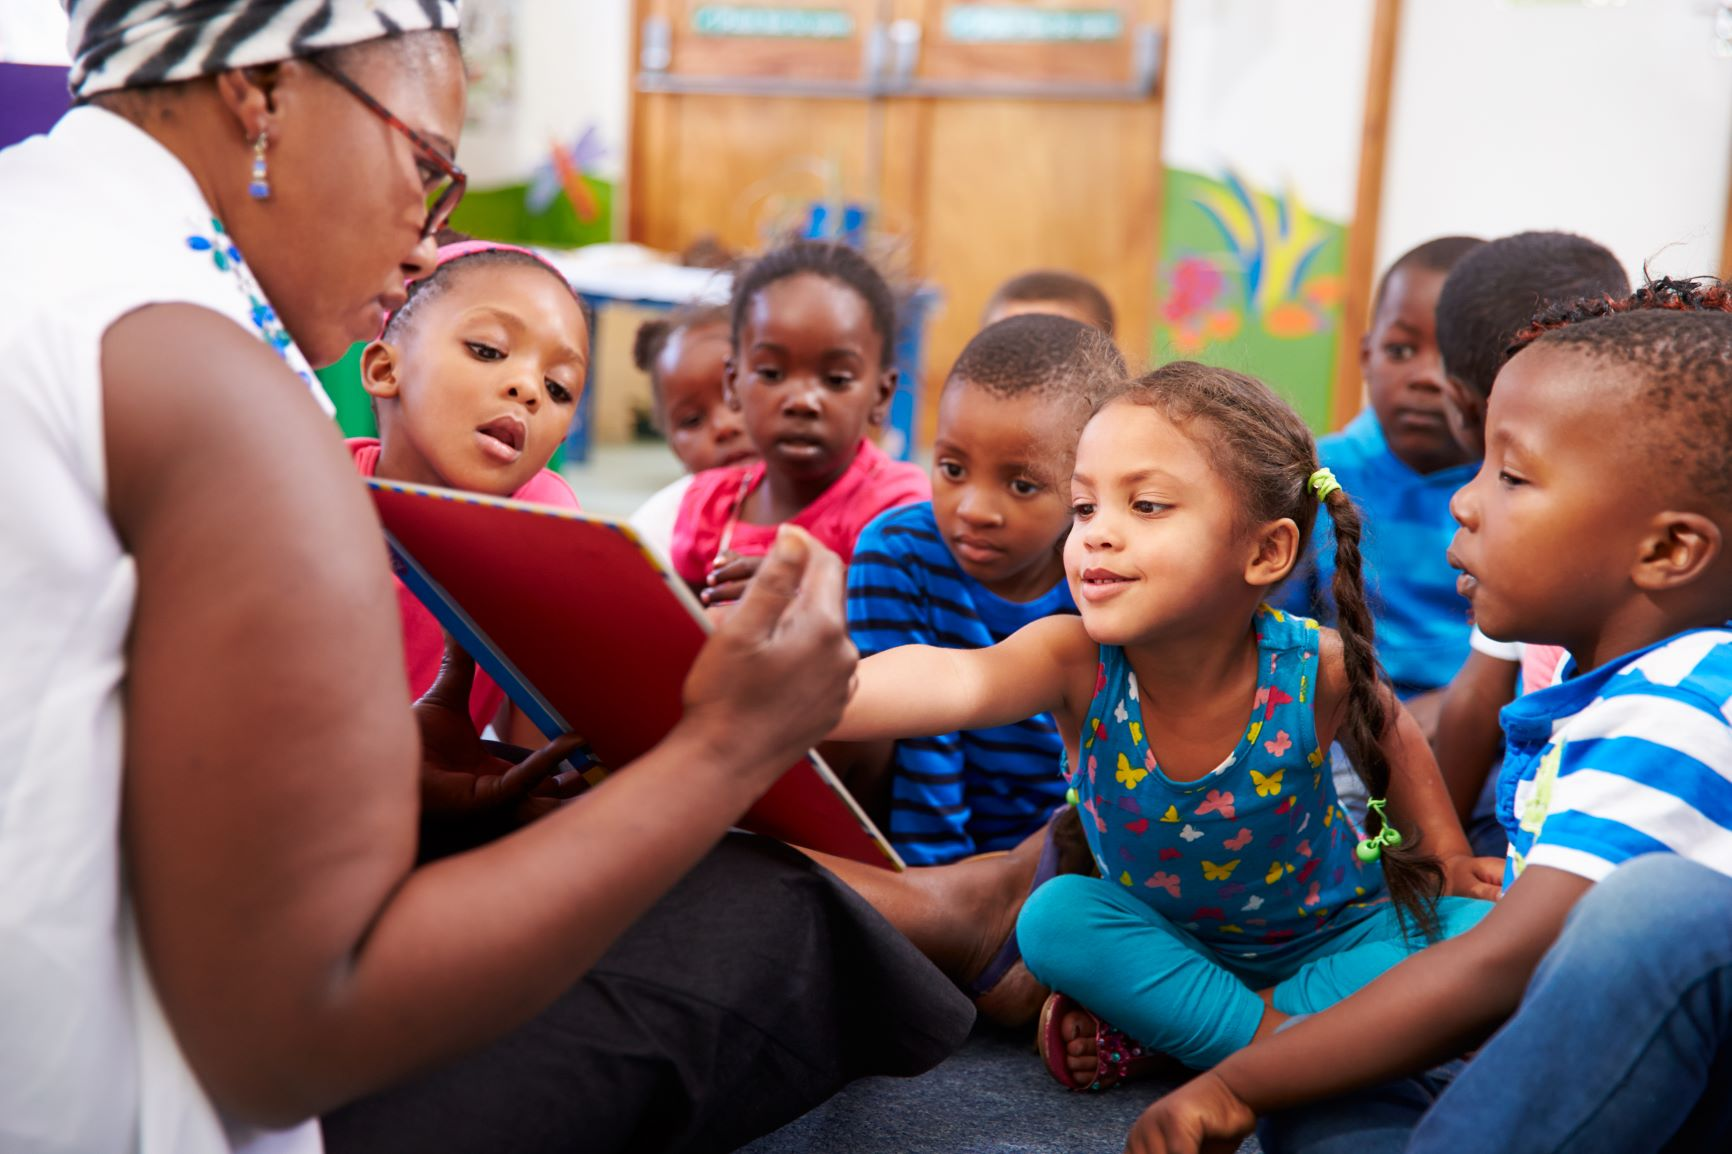 Preschool teacher reading to kids during story time, little girl pointing at book